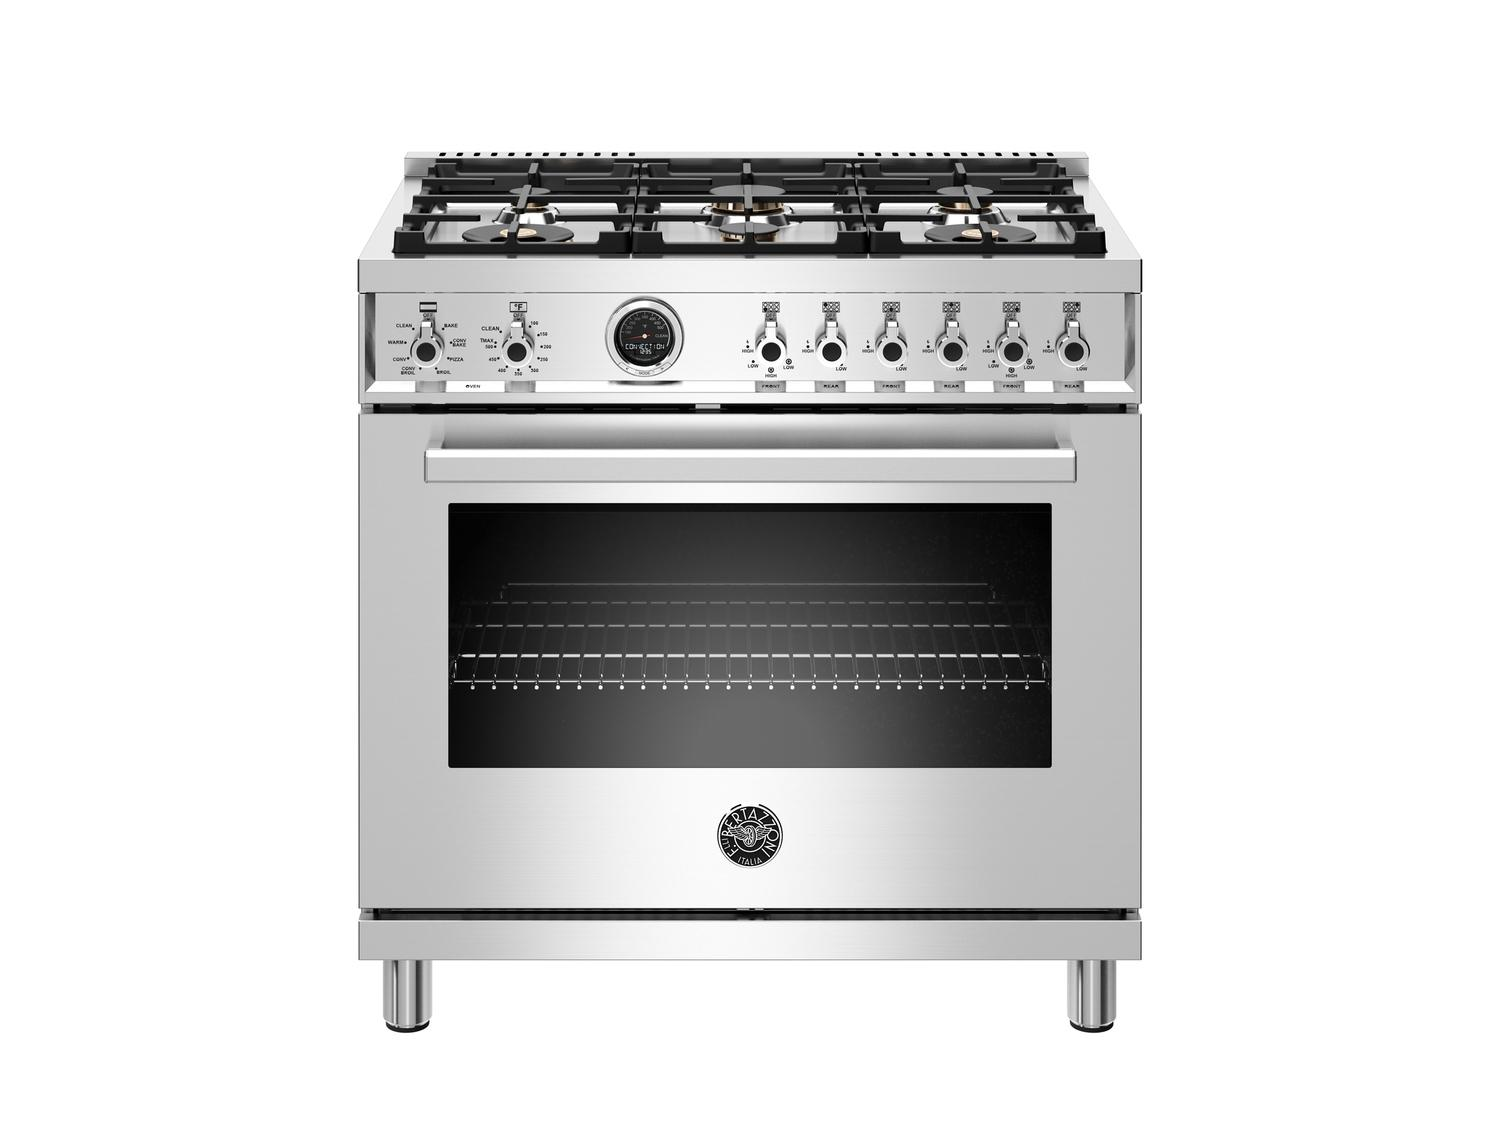 Bertazzoni36 Inch Dual Fuel Range, 6 Brass Burner, Electric Self-Clean Oven Stainless Steel